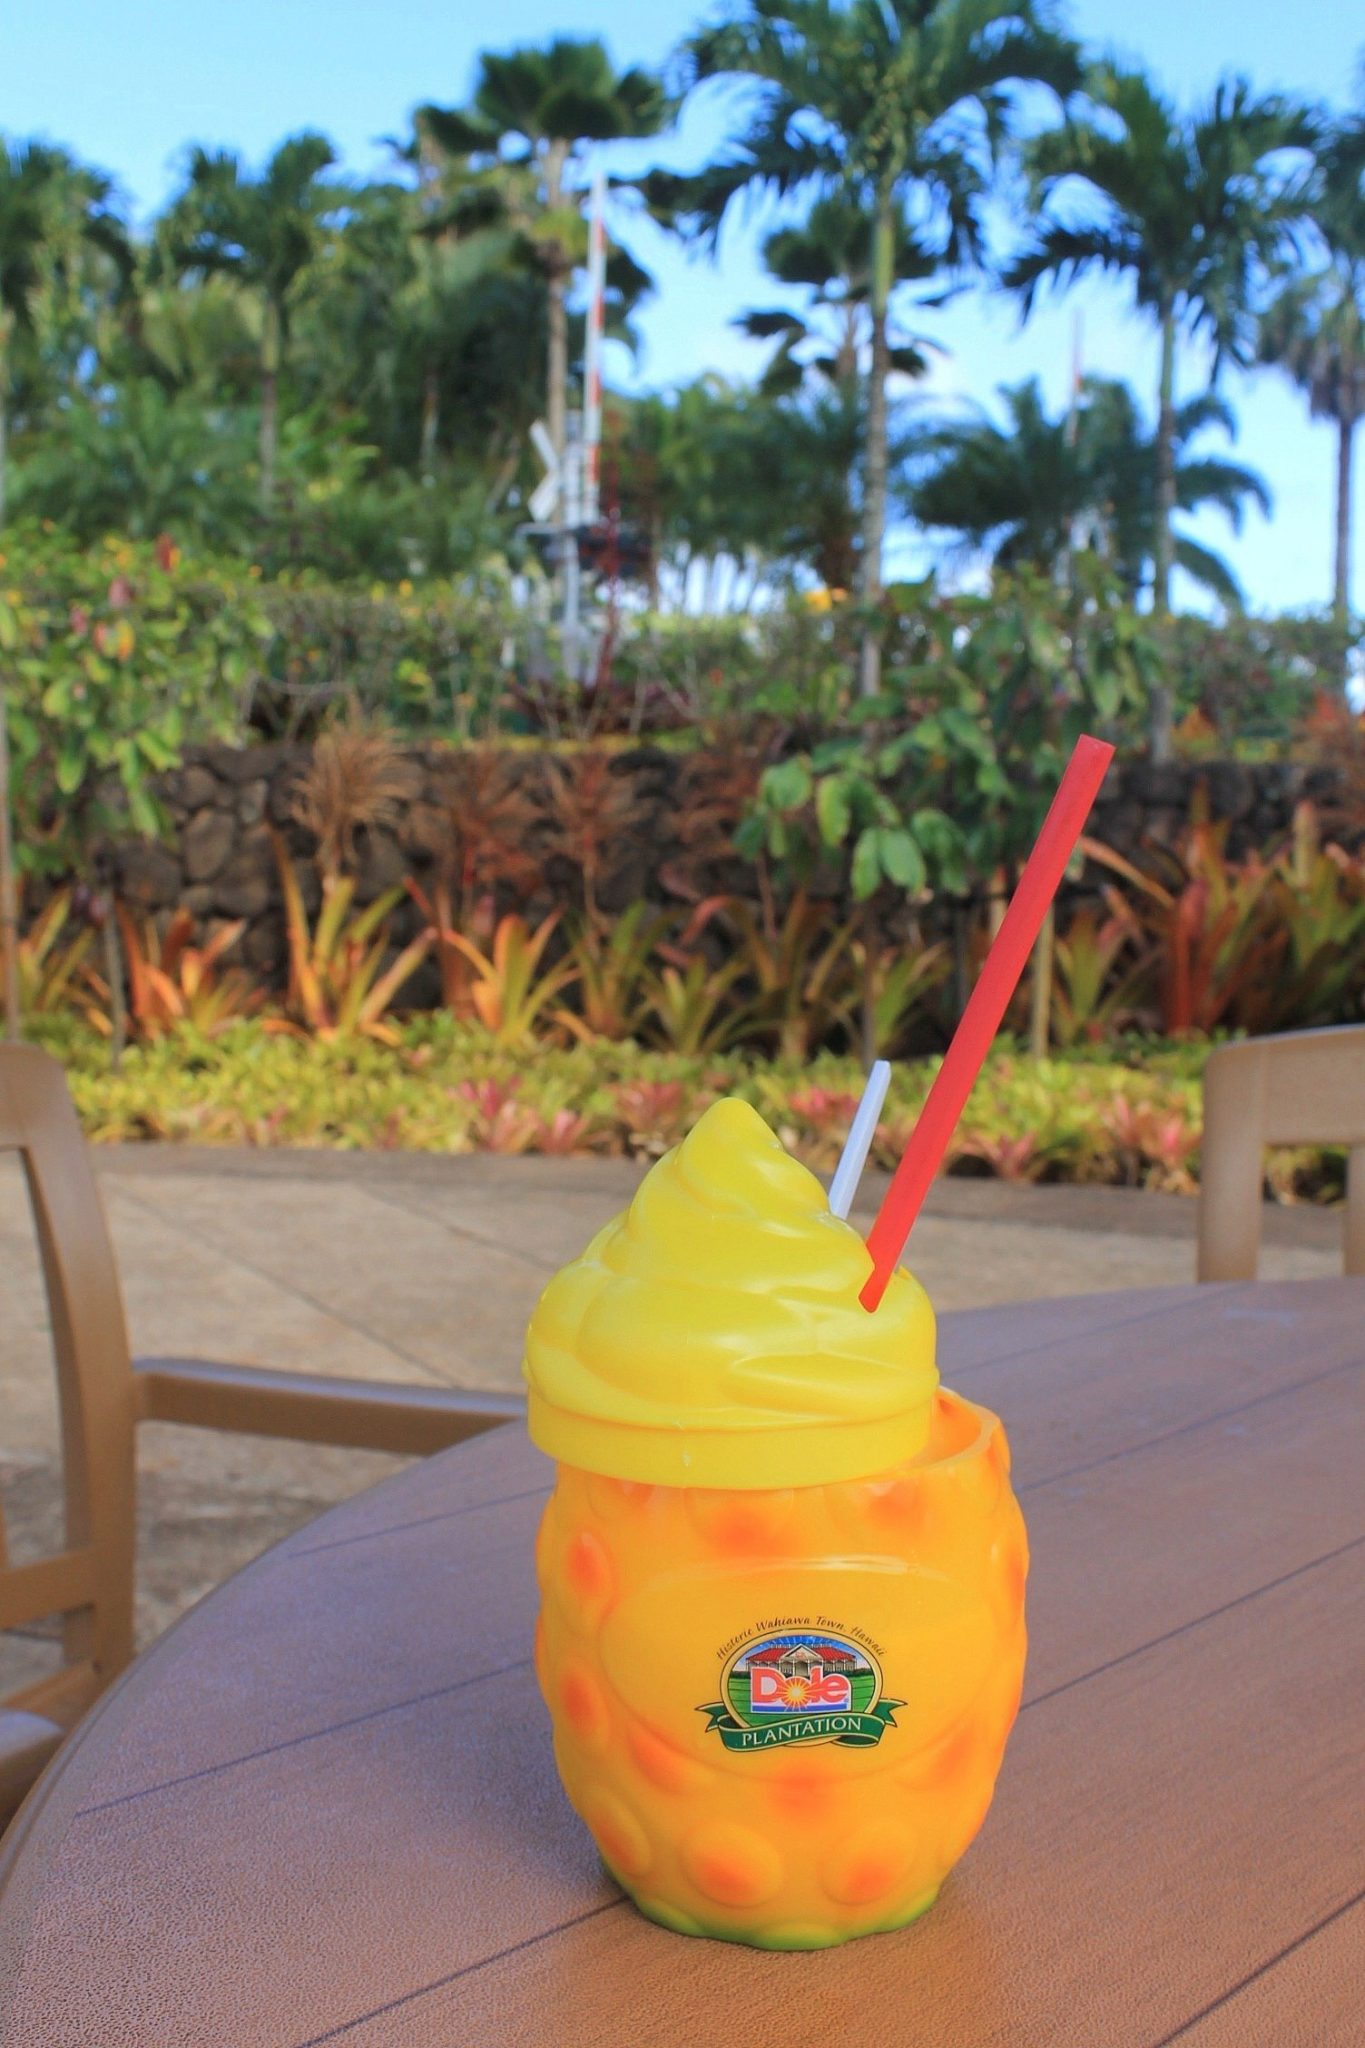 Dole Plantation - Oahu, Hawaii